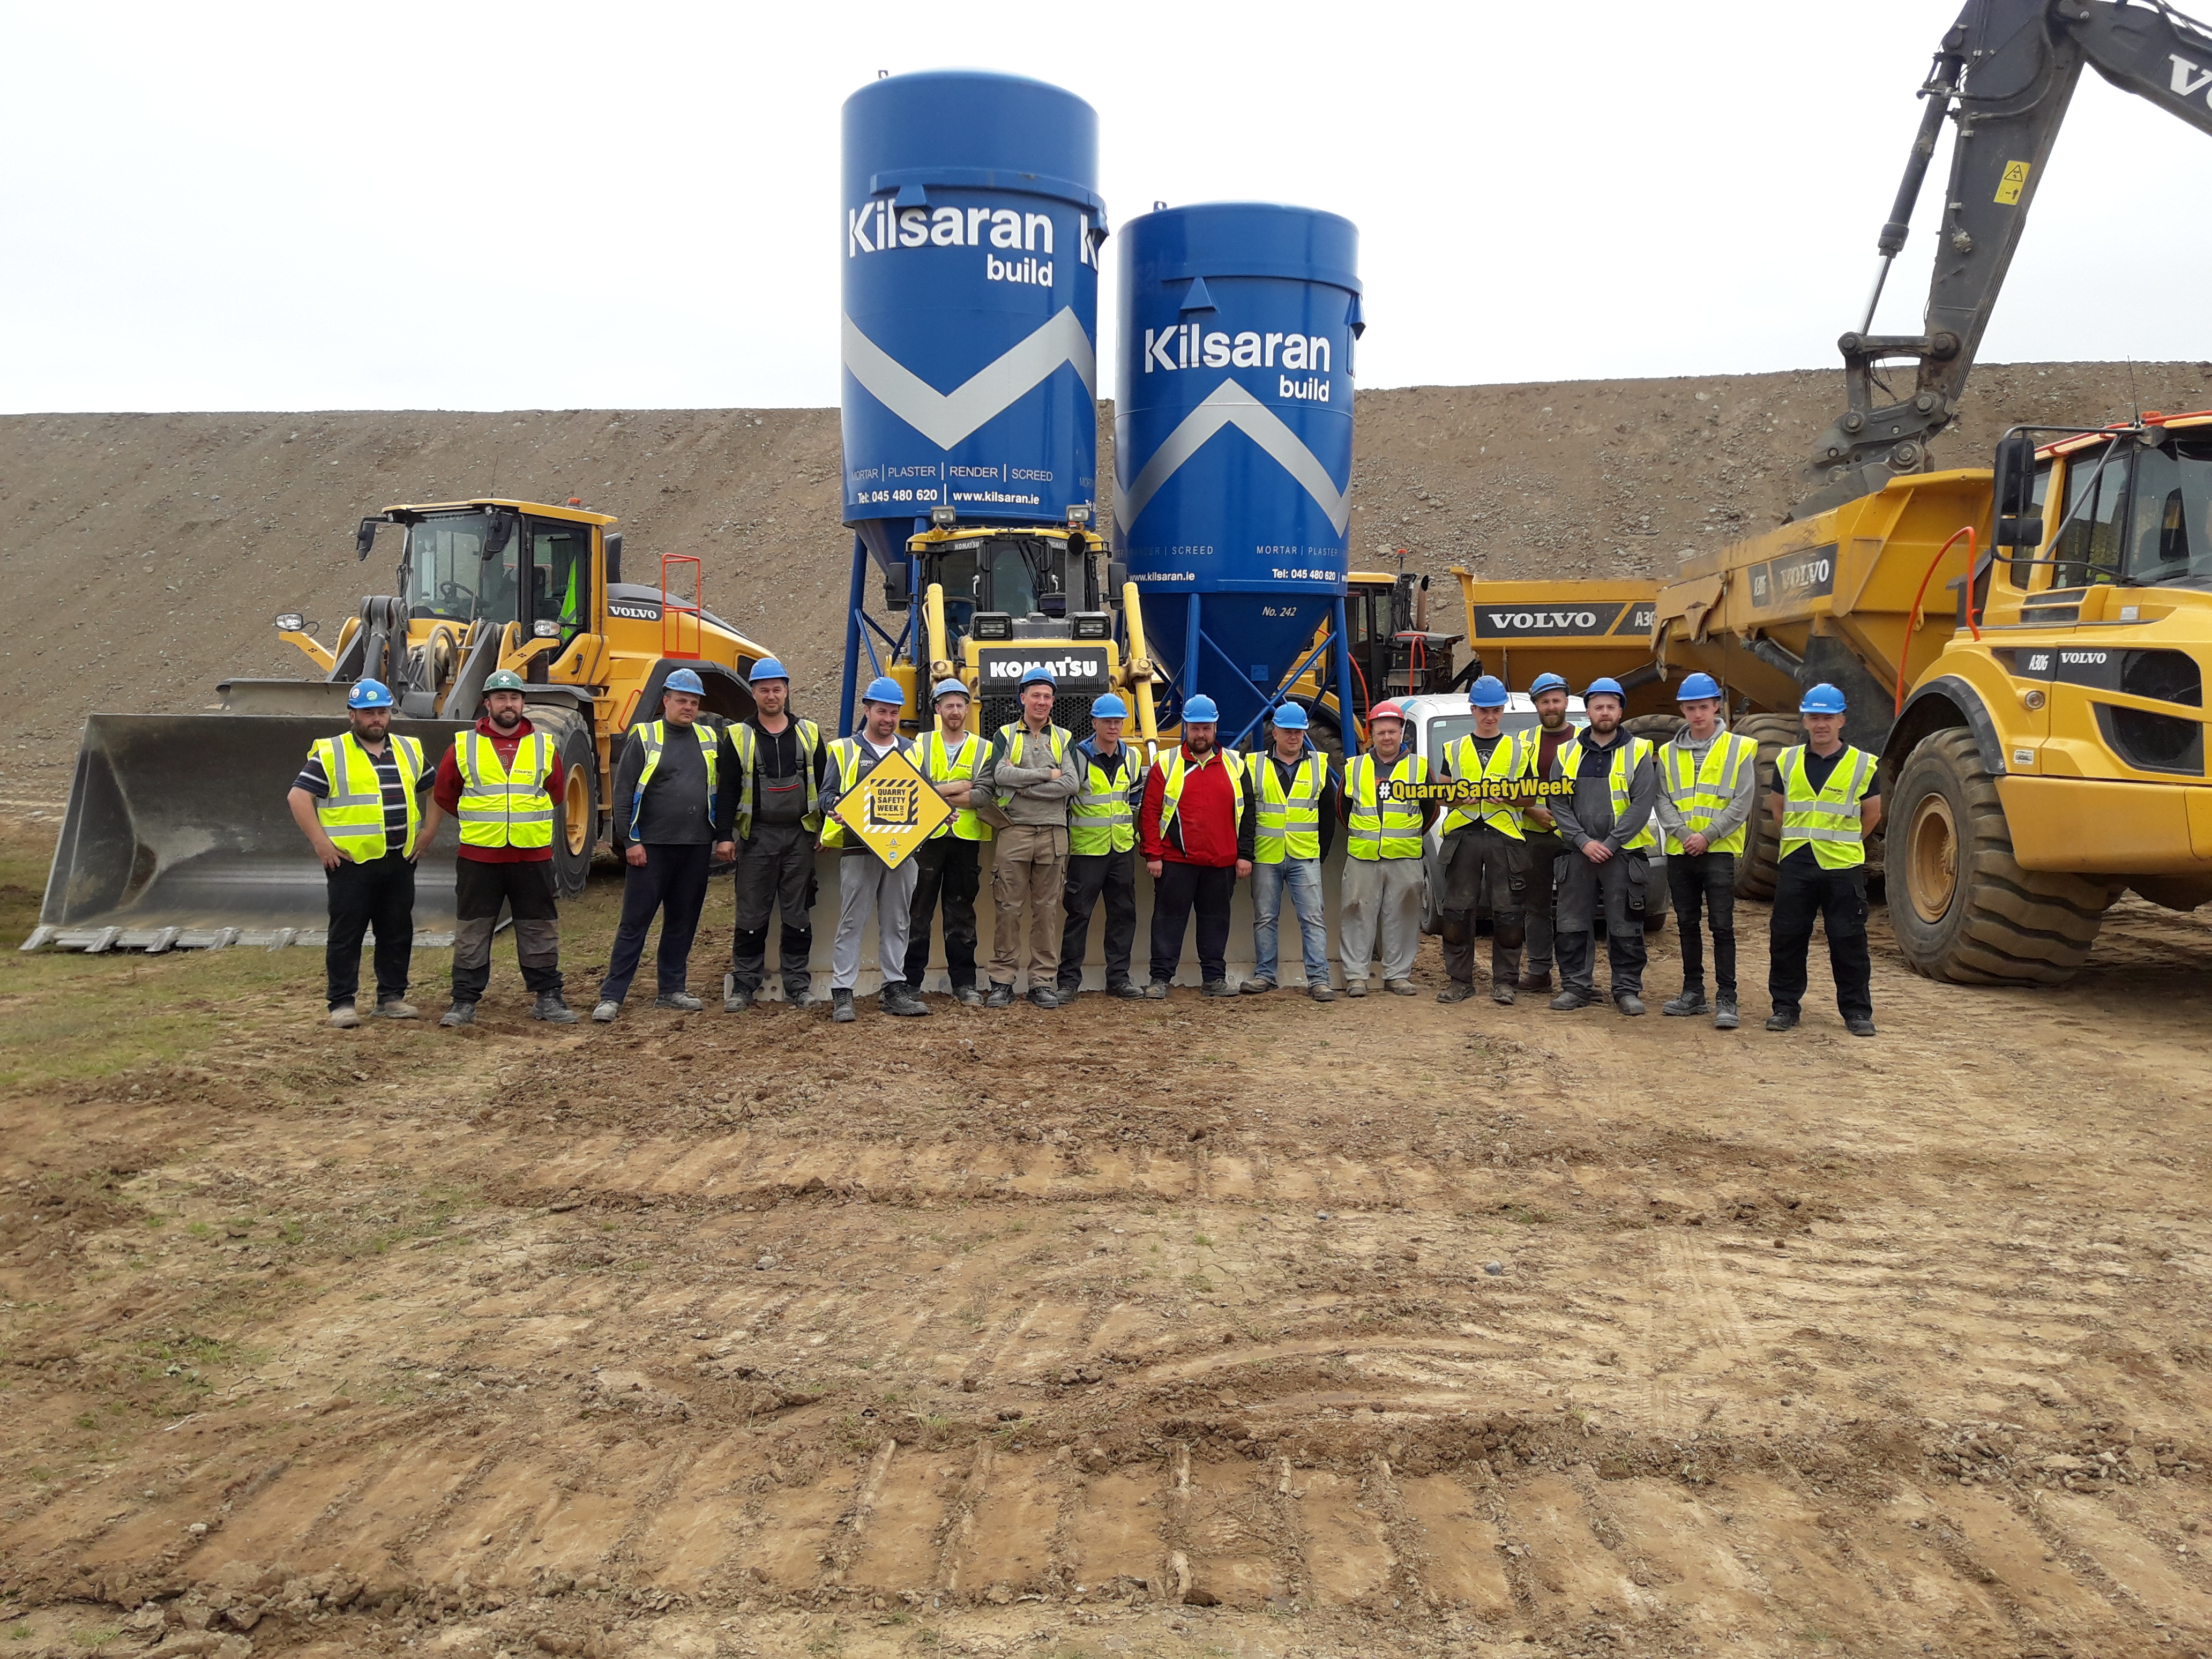 Quarry Safety Week 9th - 13th Sep